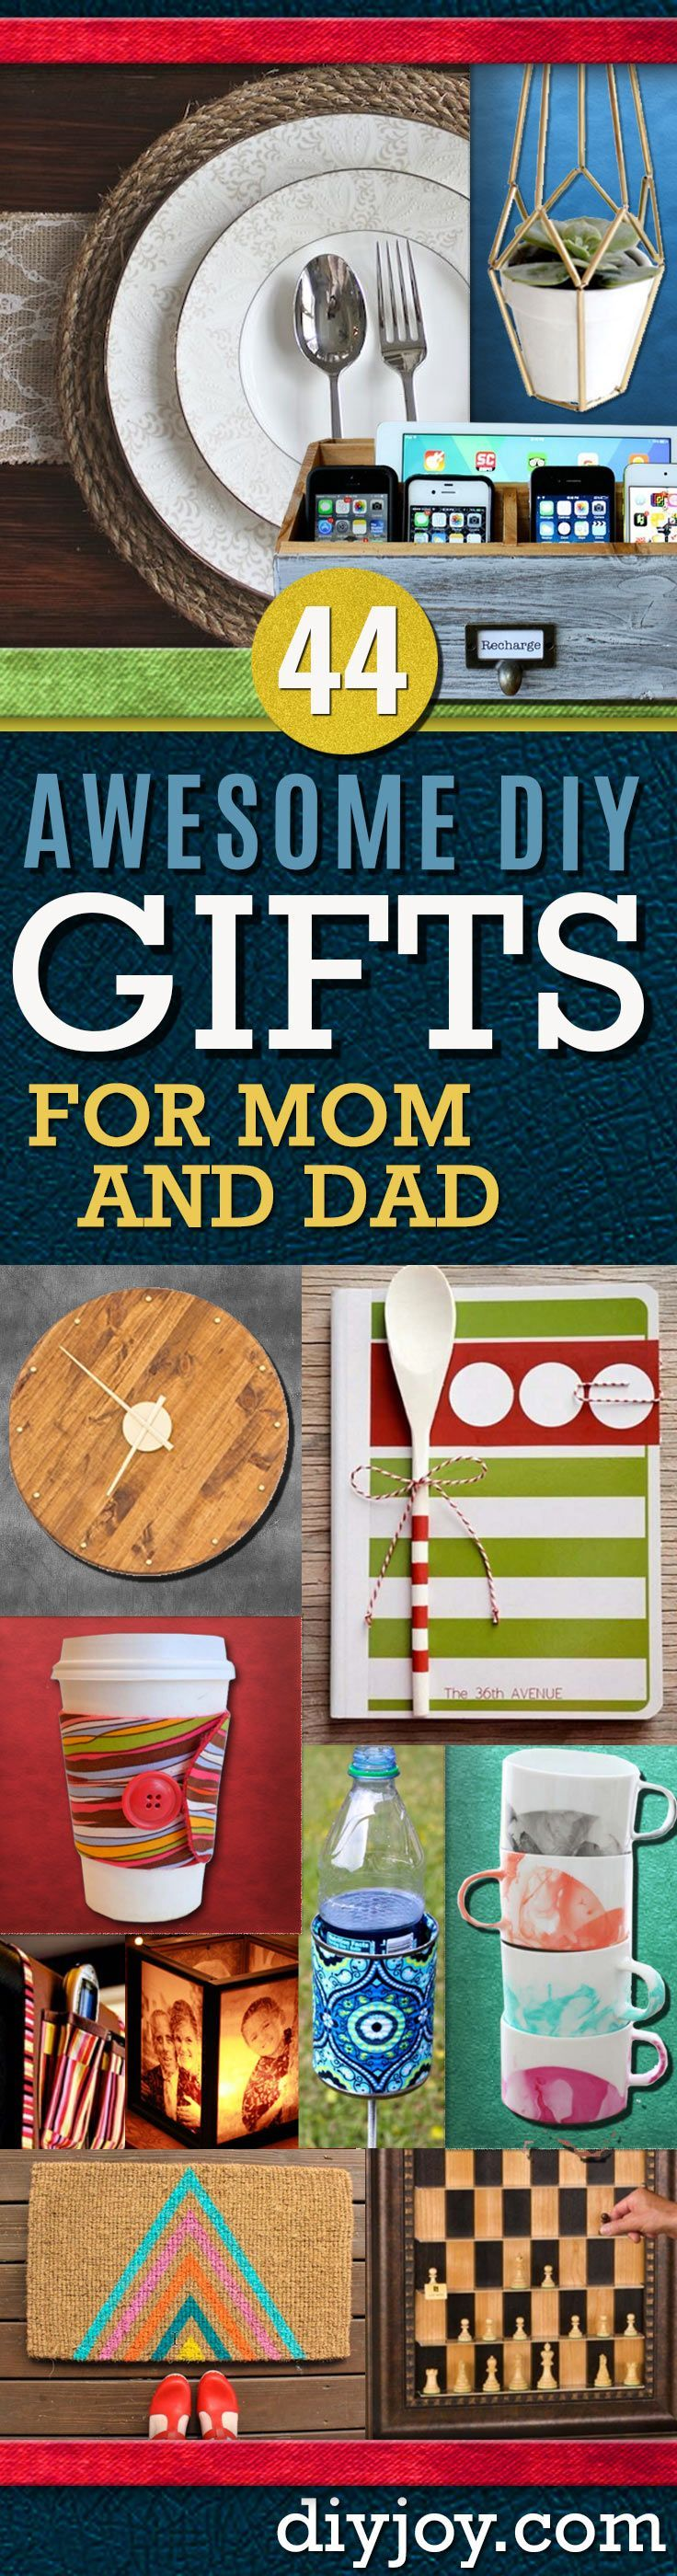 Best 25 Gift ideas for mum ideas on Pinterest